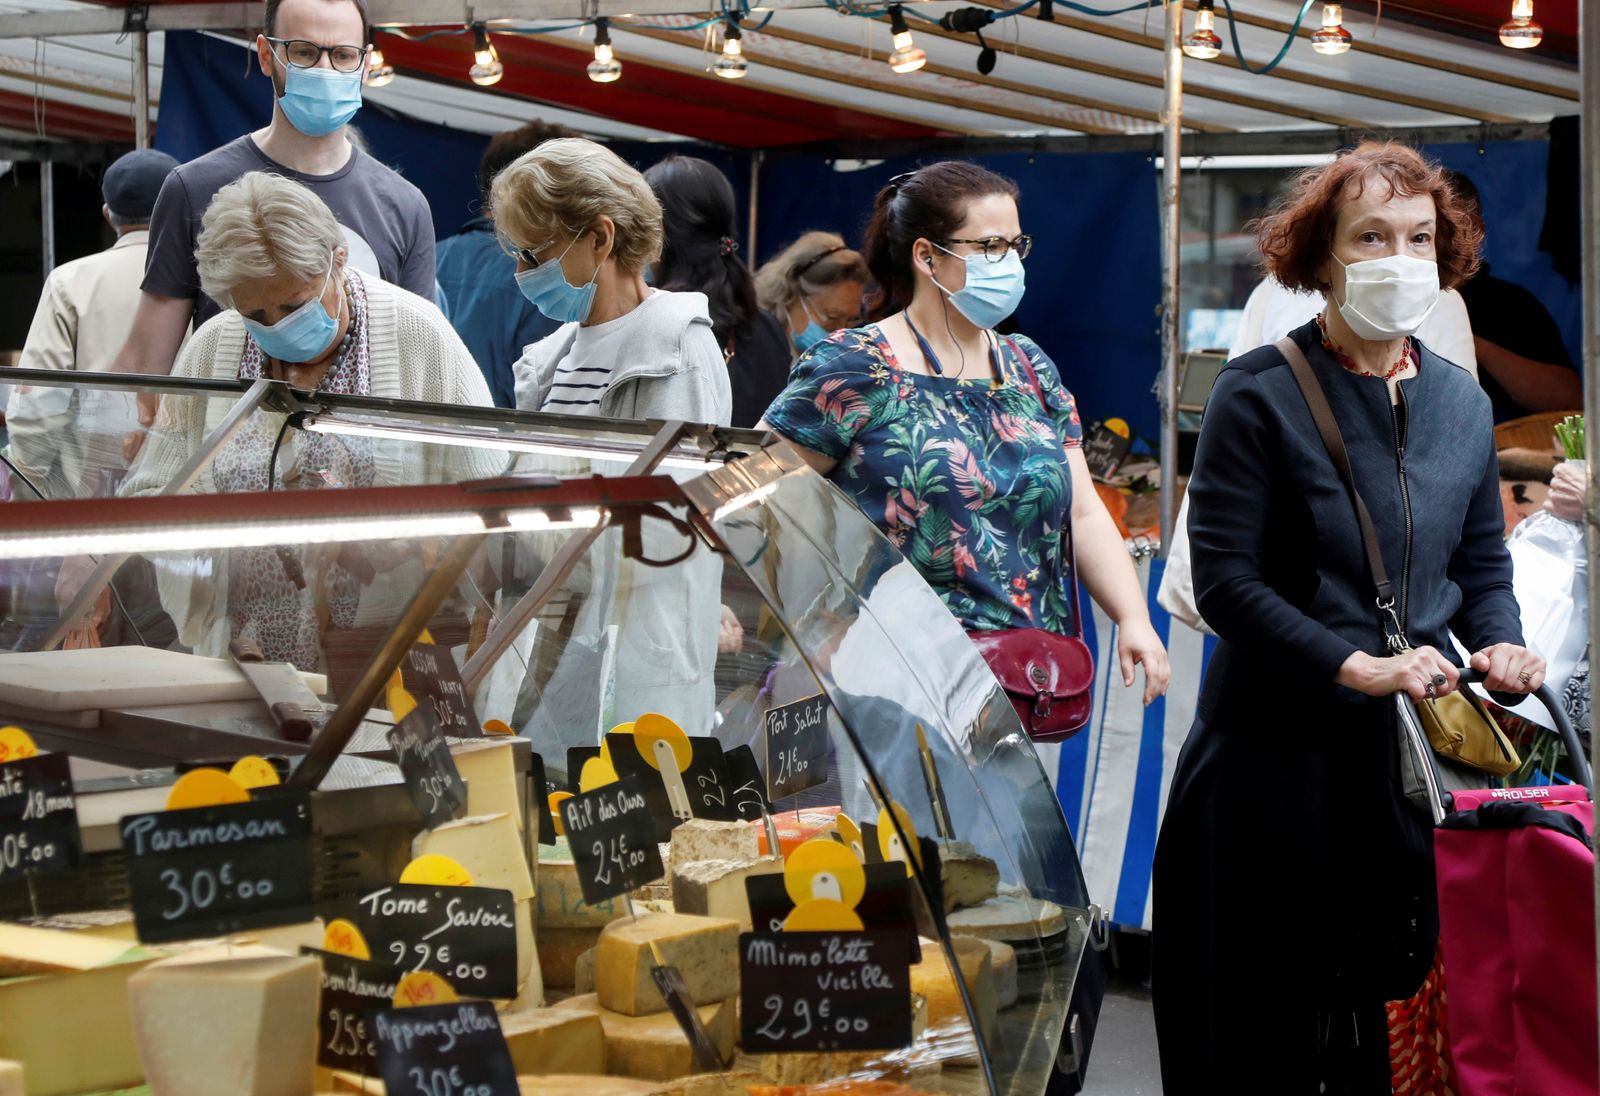 FILE PHOTO: People wear protective masks at an open-air market, in Paris